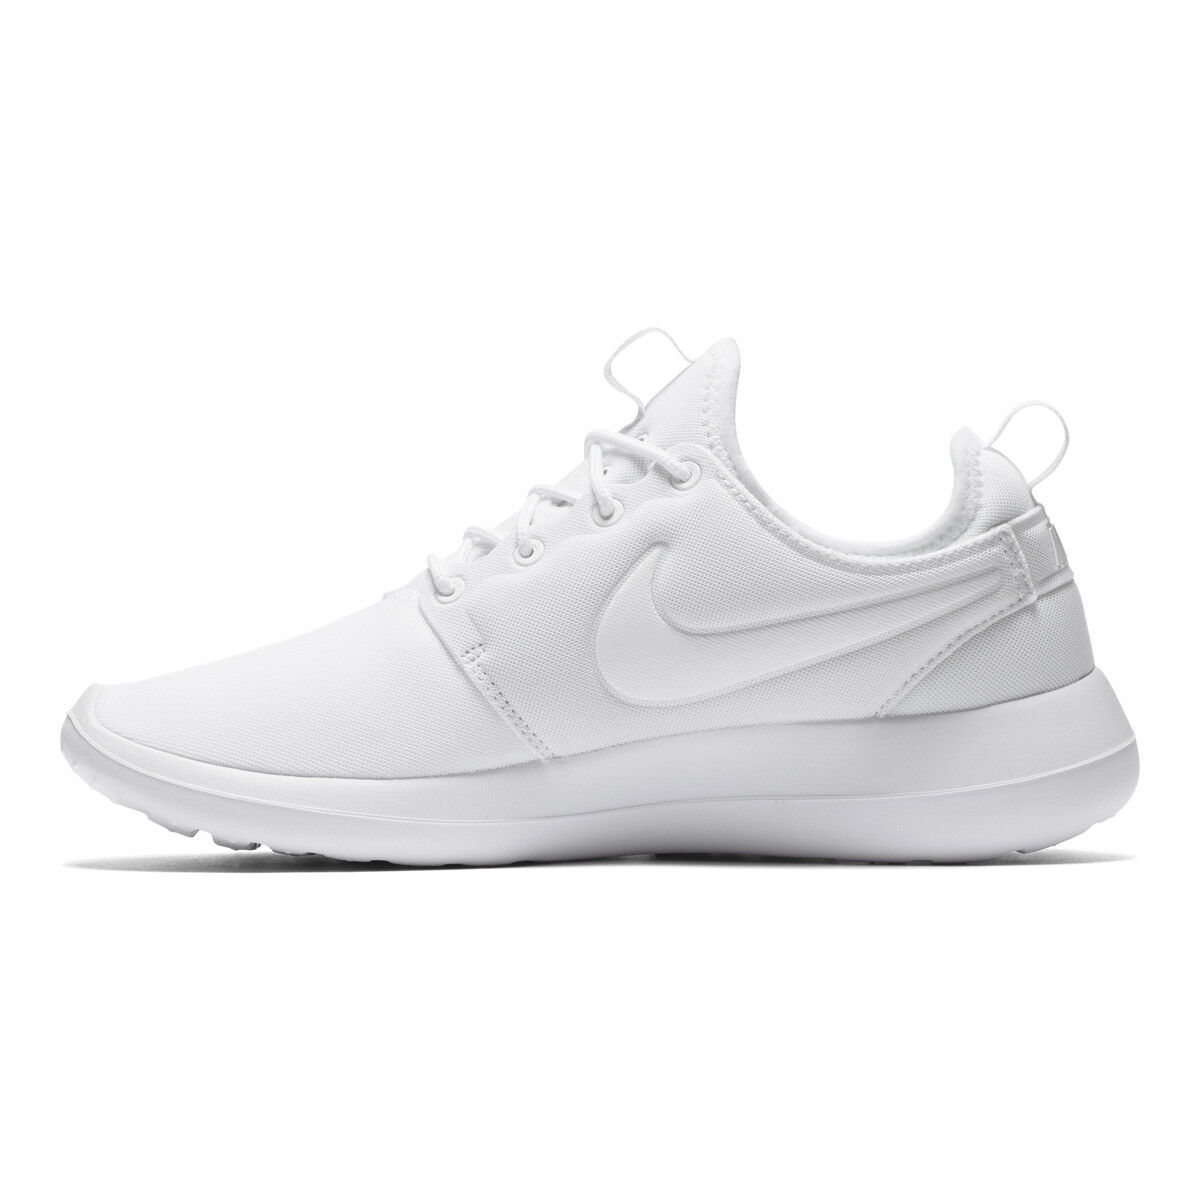 various colors 0d30b c1dbf WMNS Nike Roshe Two 2 Triple White Rosherun Womens Running Shoes ...